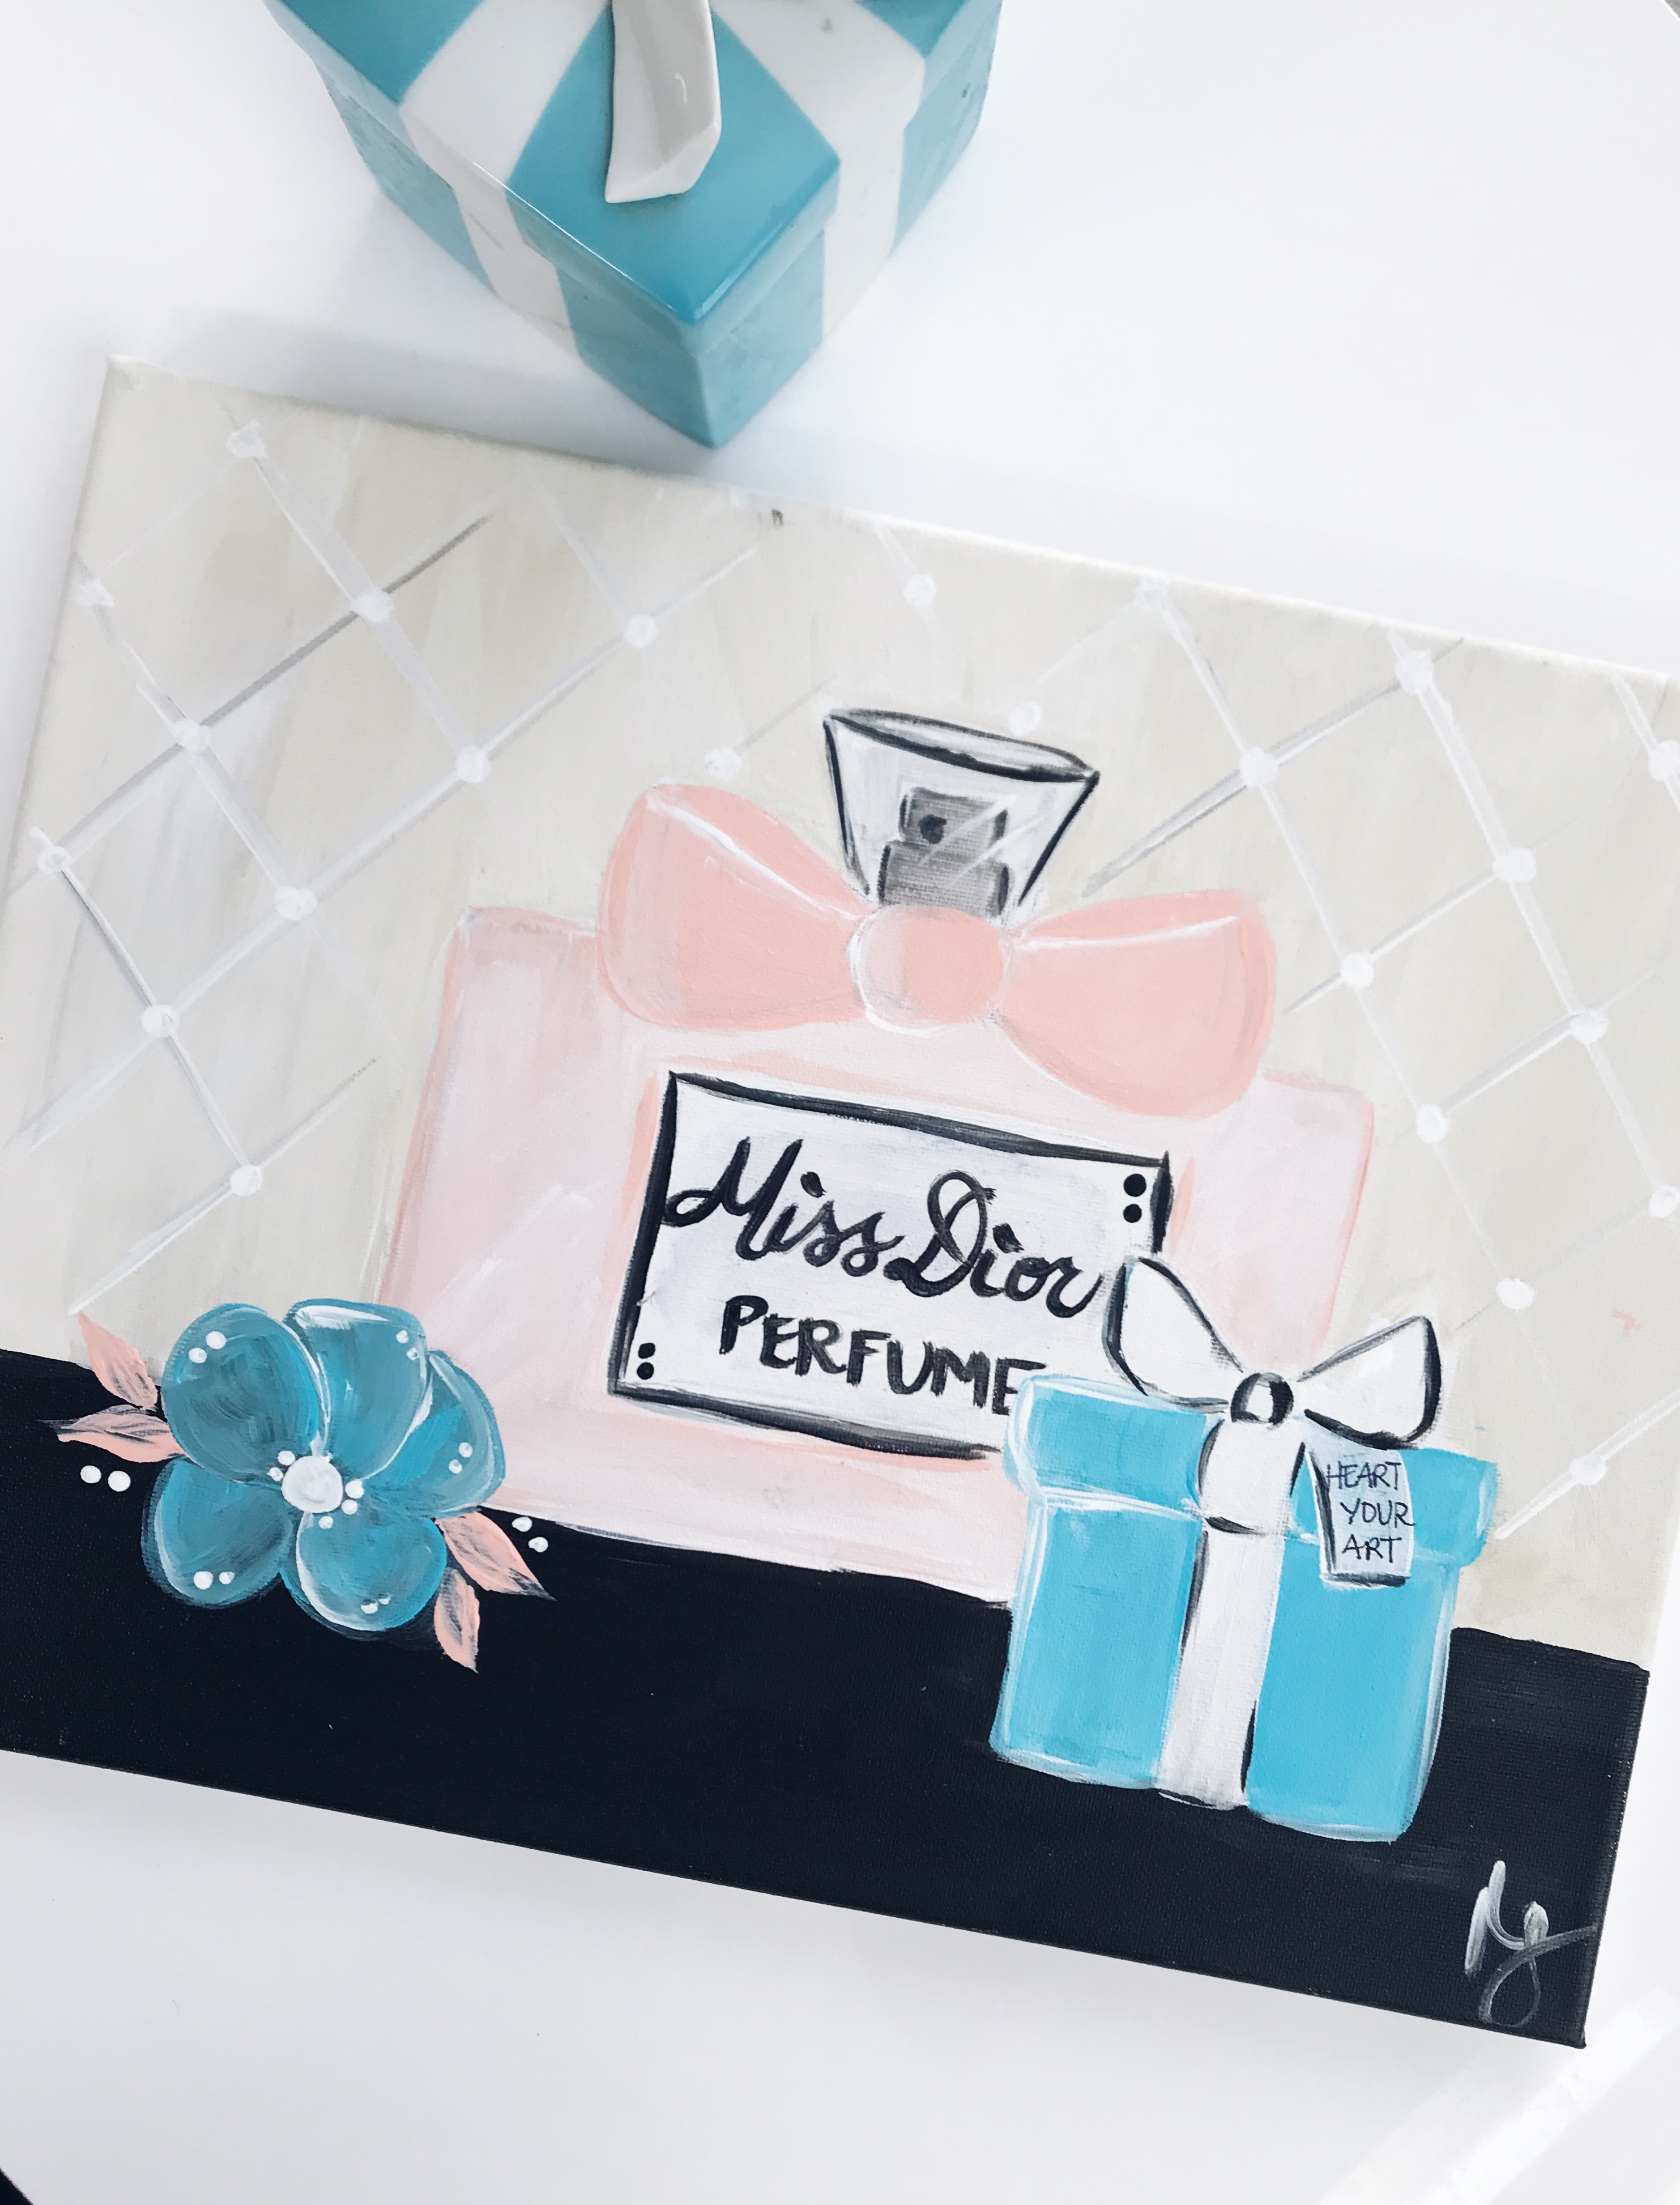 Little Blue Box and Perfume